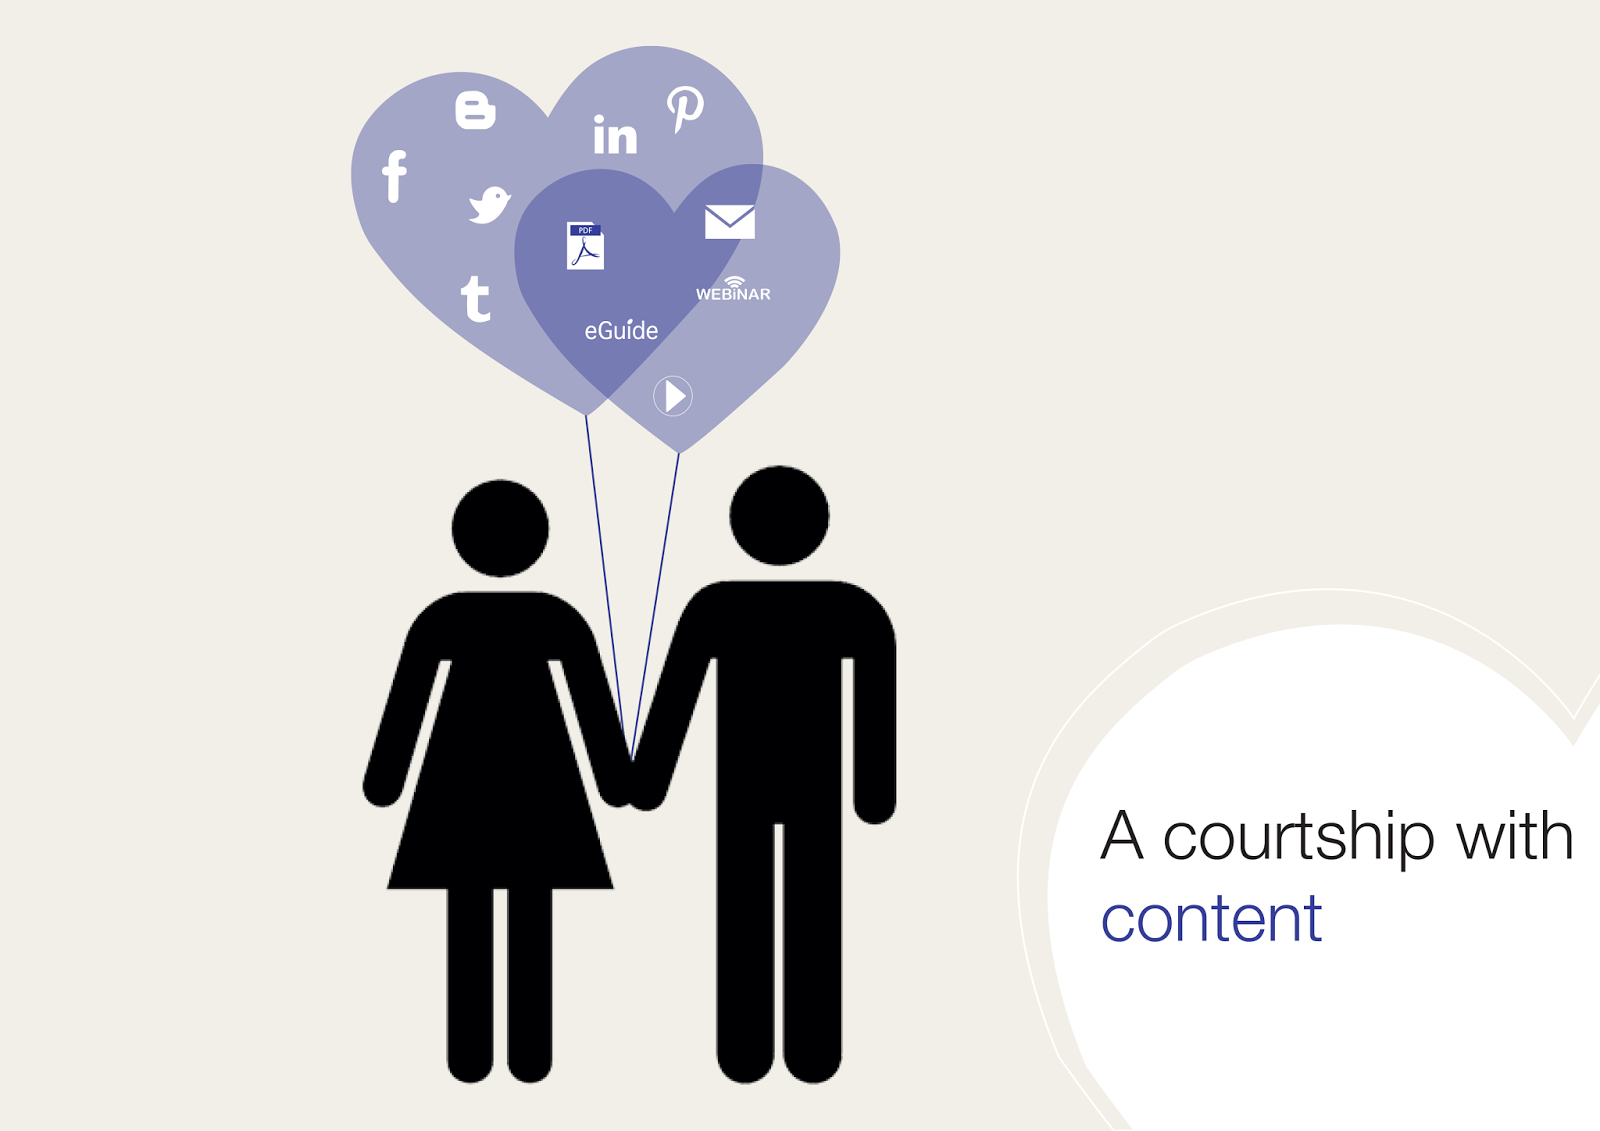 Girl and boy hold a balloon with social media icons as well as pdf, e-guide, webinar